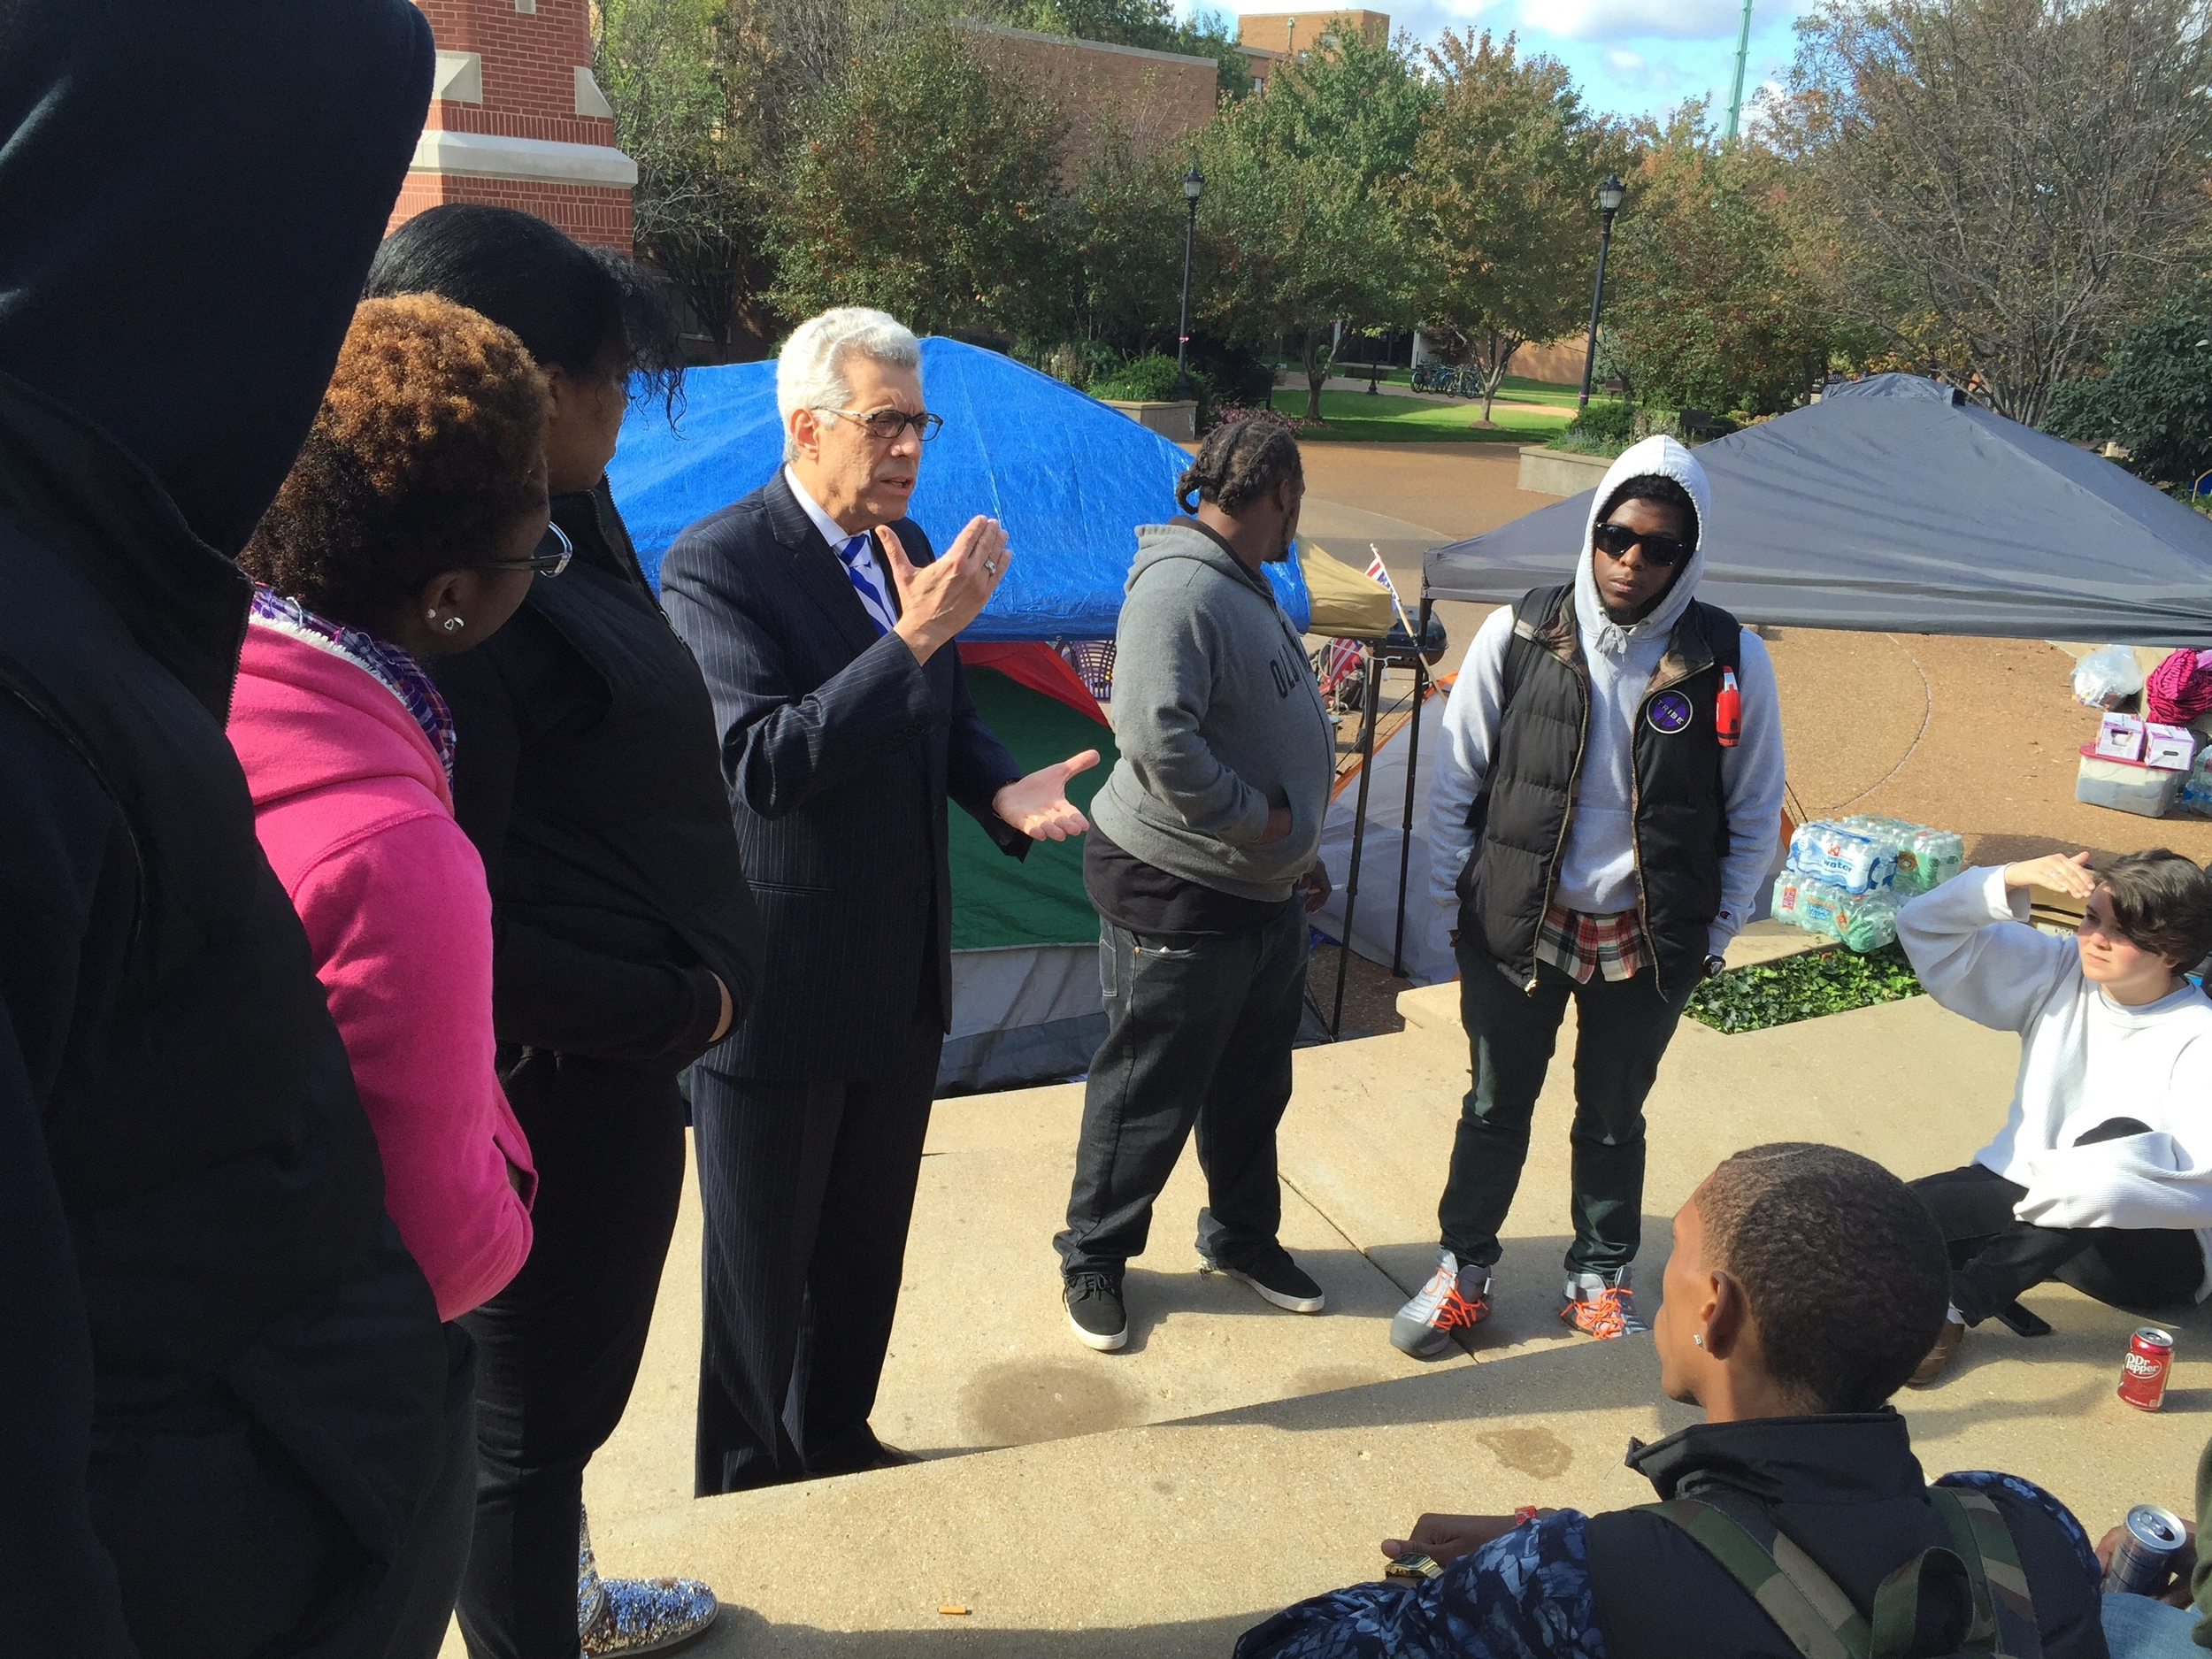 Saint Louis University President Dr. Fred P. Pestello speaks with protesters (Photo by Saint Louis University)